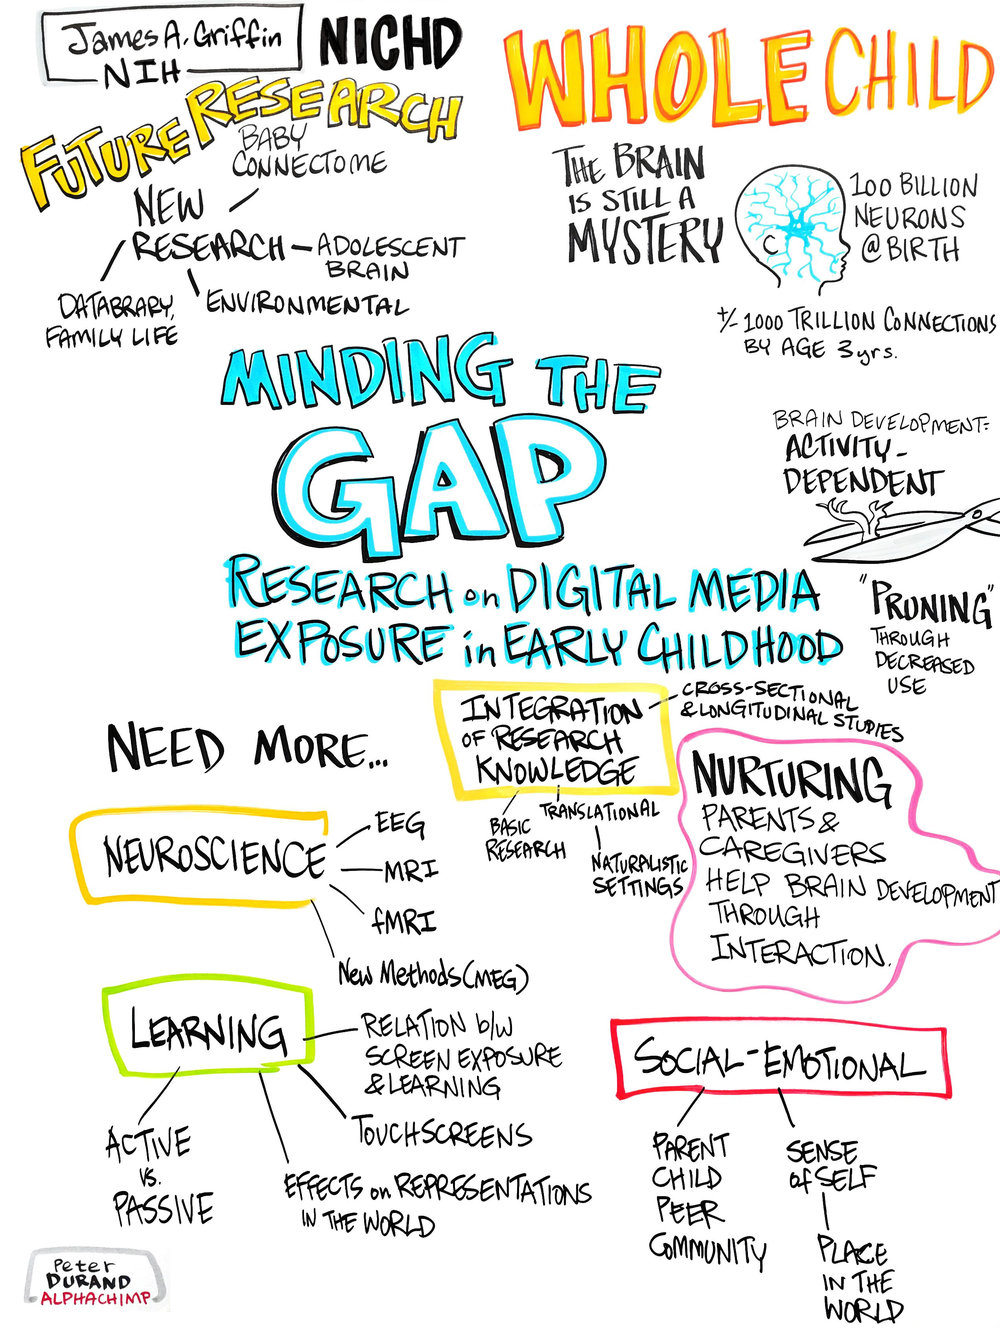 Keynote: Minding the Gap: Research on Digital Media Exposure in Early Childhood